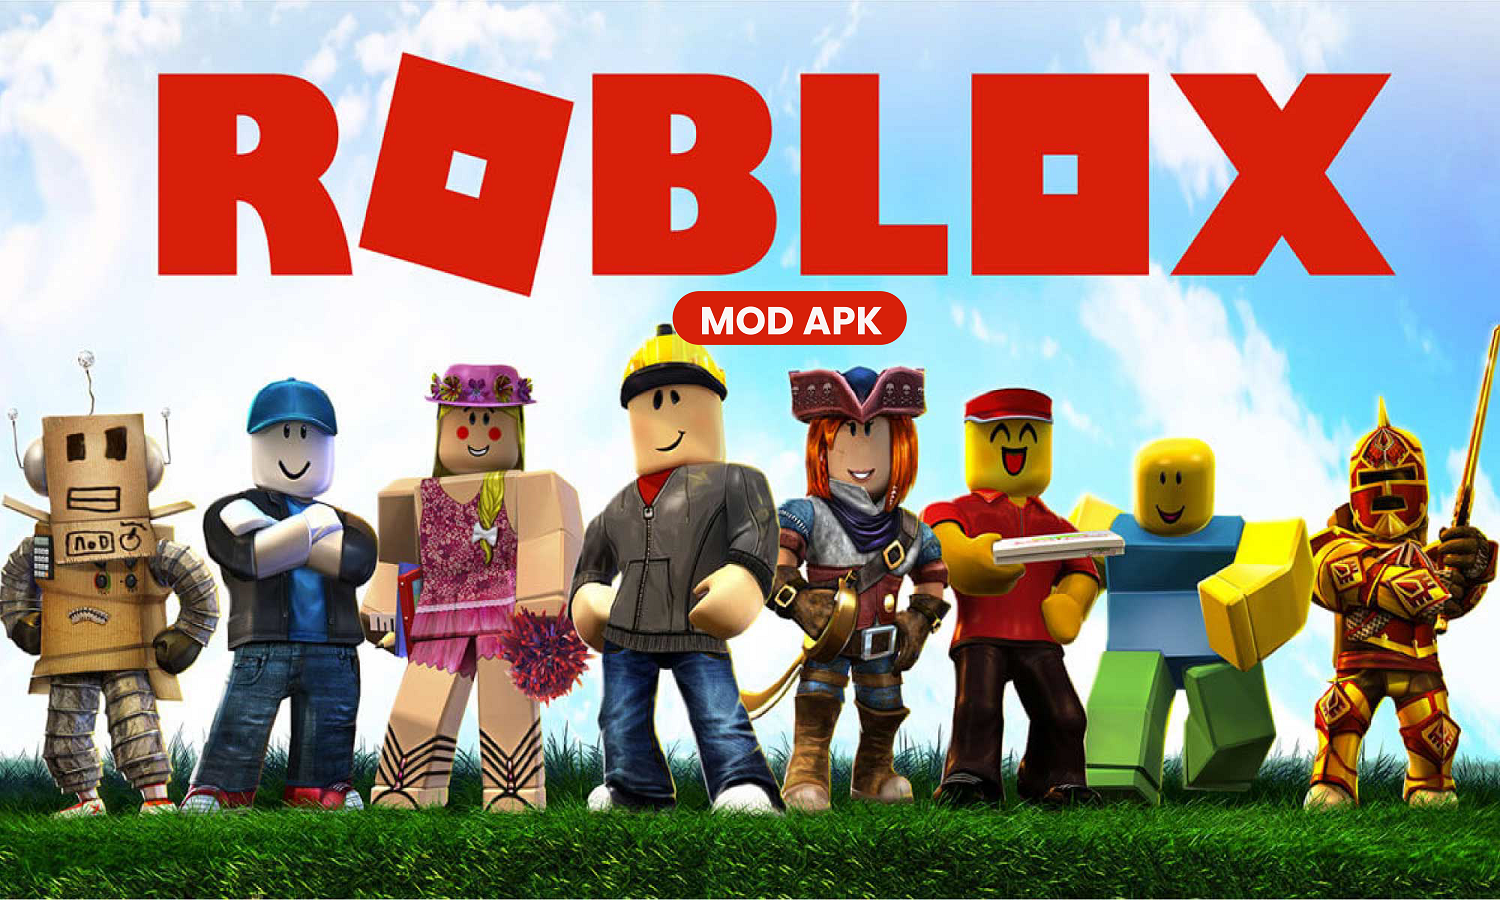 Download Roblox Mod APK Unlimited Money Updated 2020